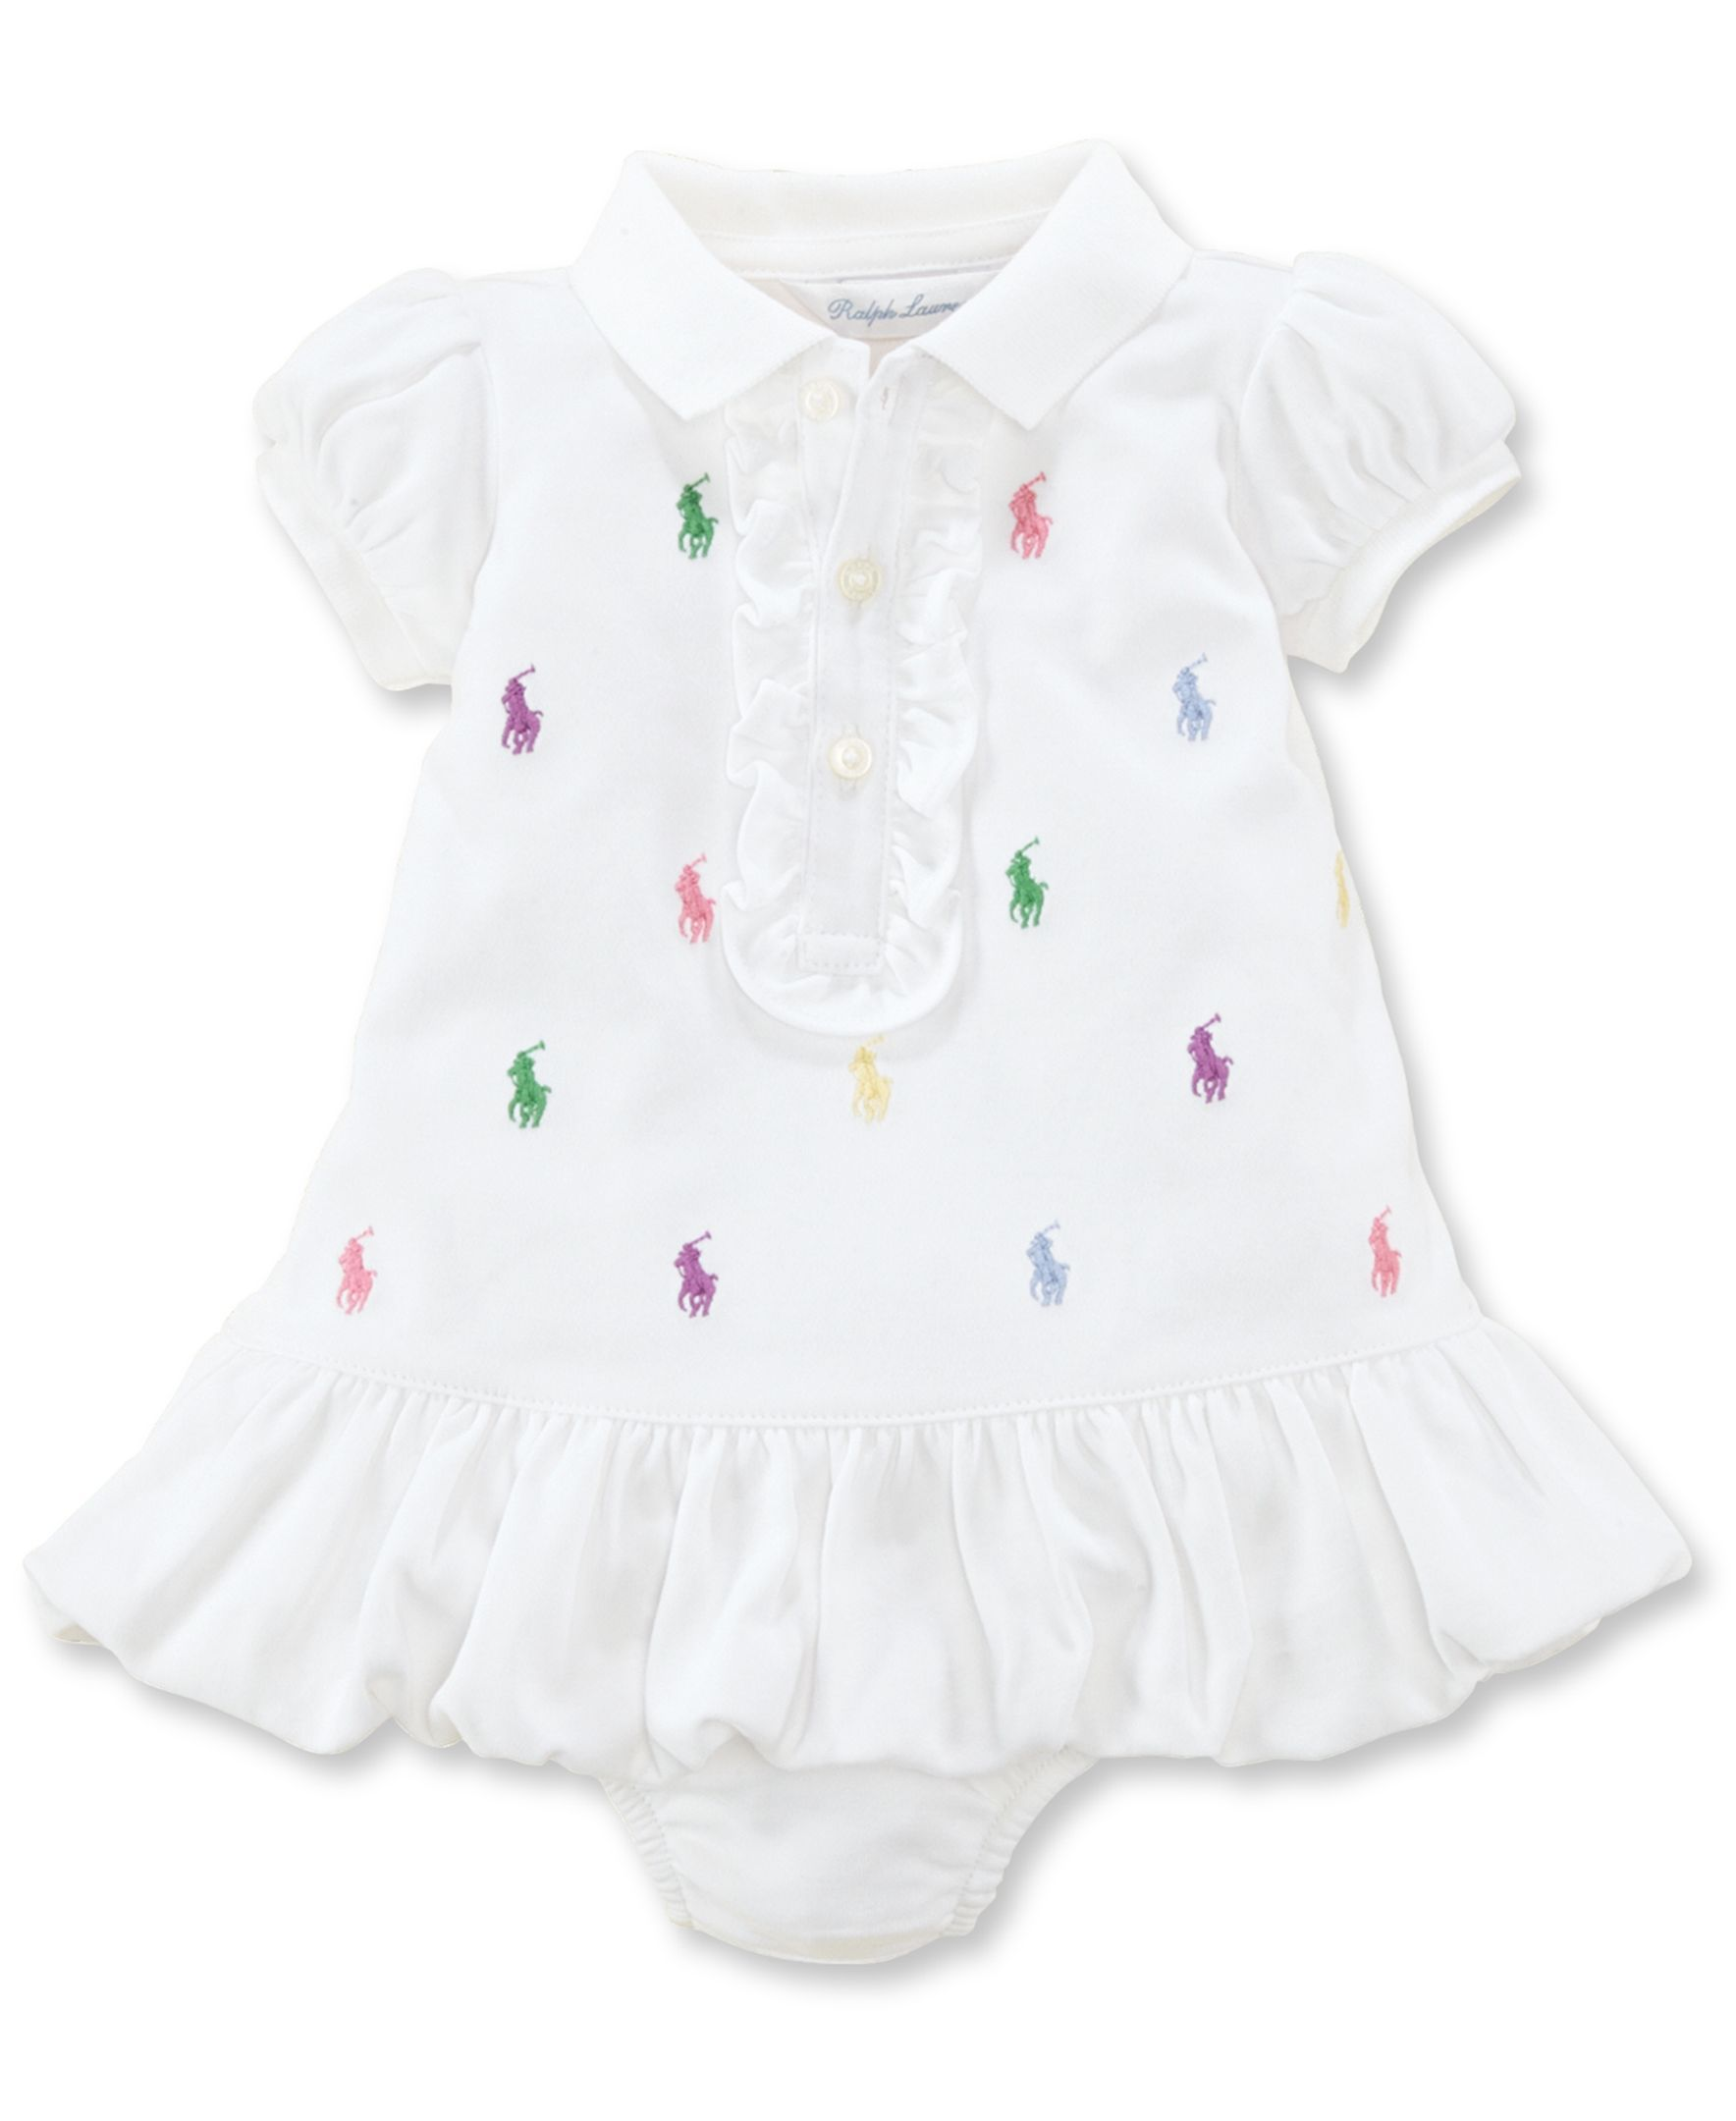 ed57ae86 Ralph Lauren Baby Girls Embroidered Polo Dress | Products | Dresses ...